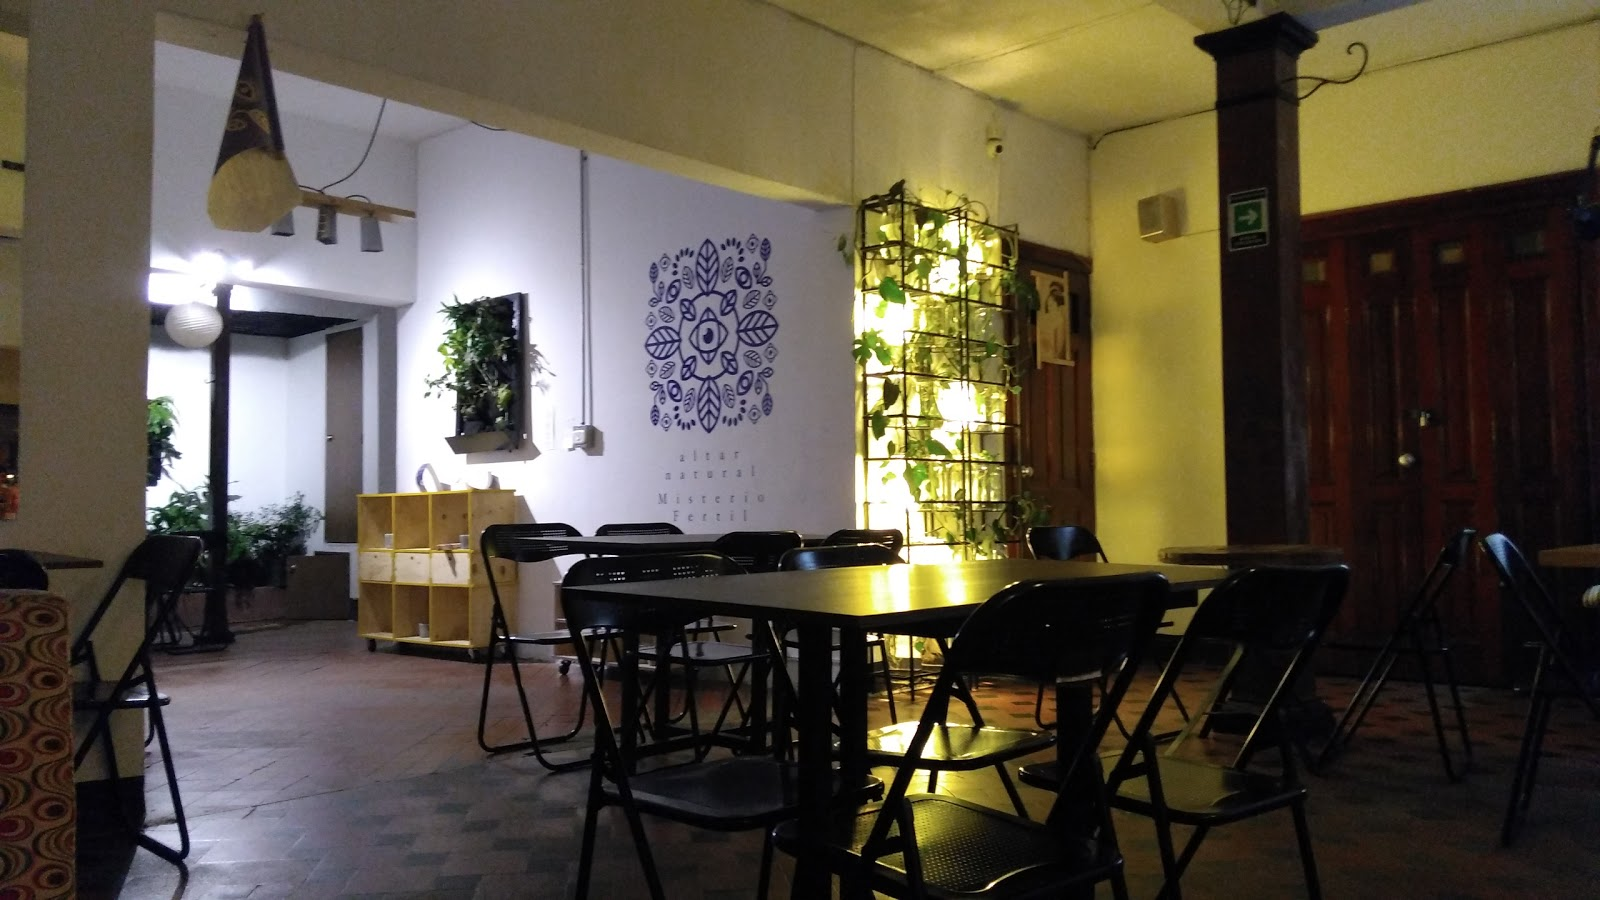 Naturalia Café: A Work-Friendly Place in Medellin